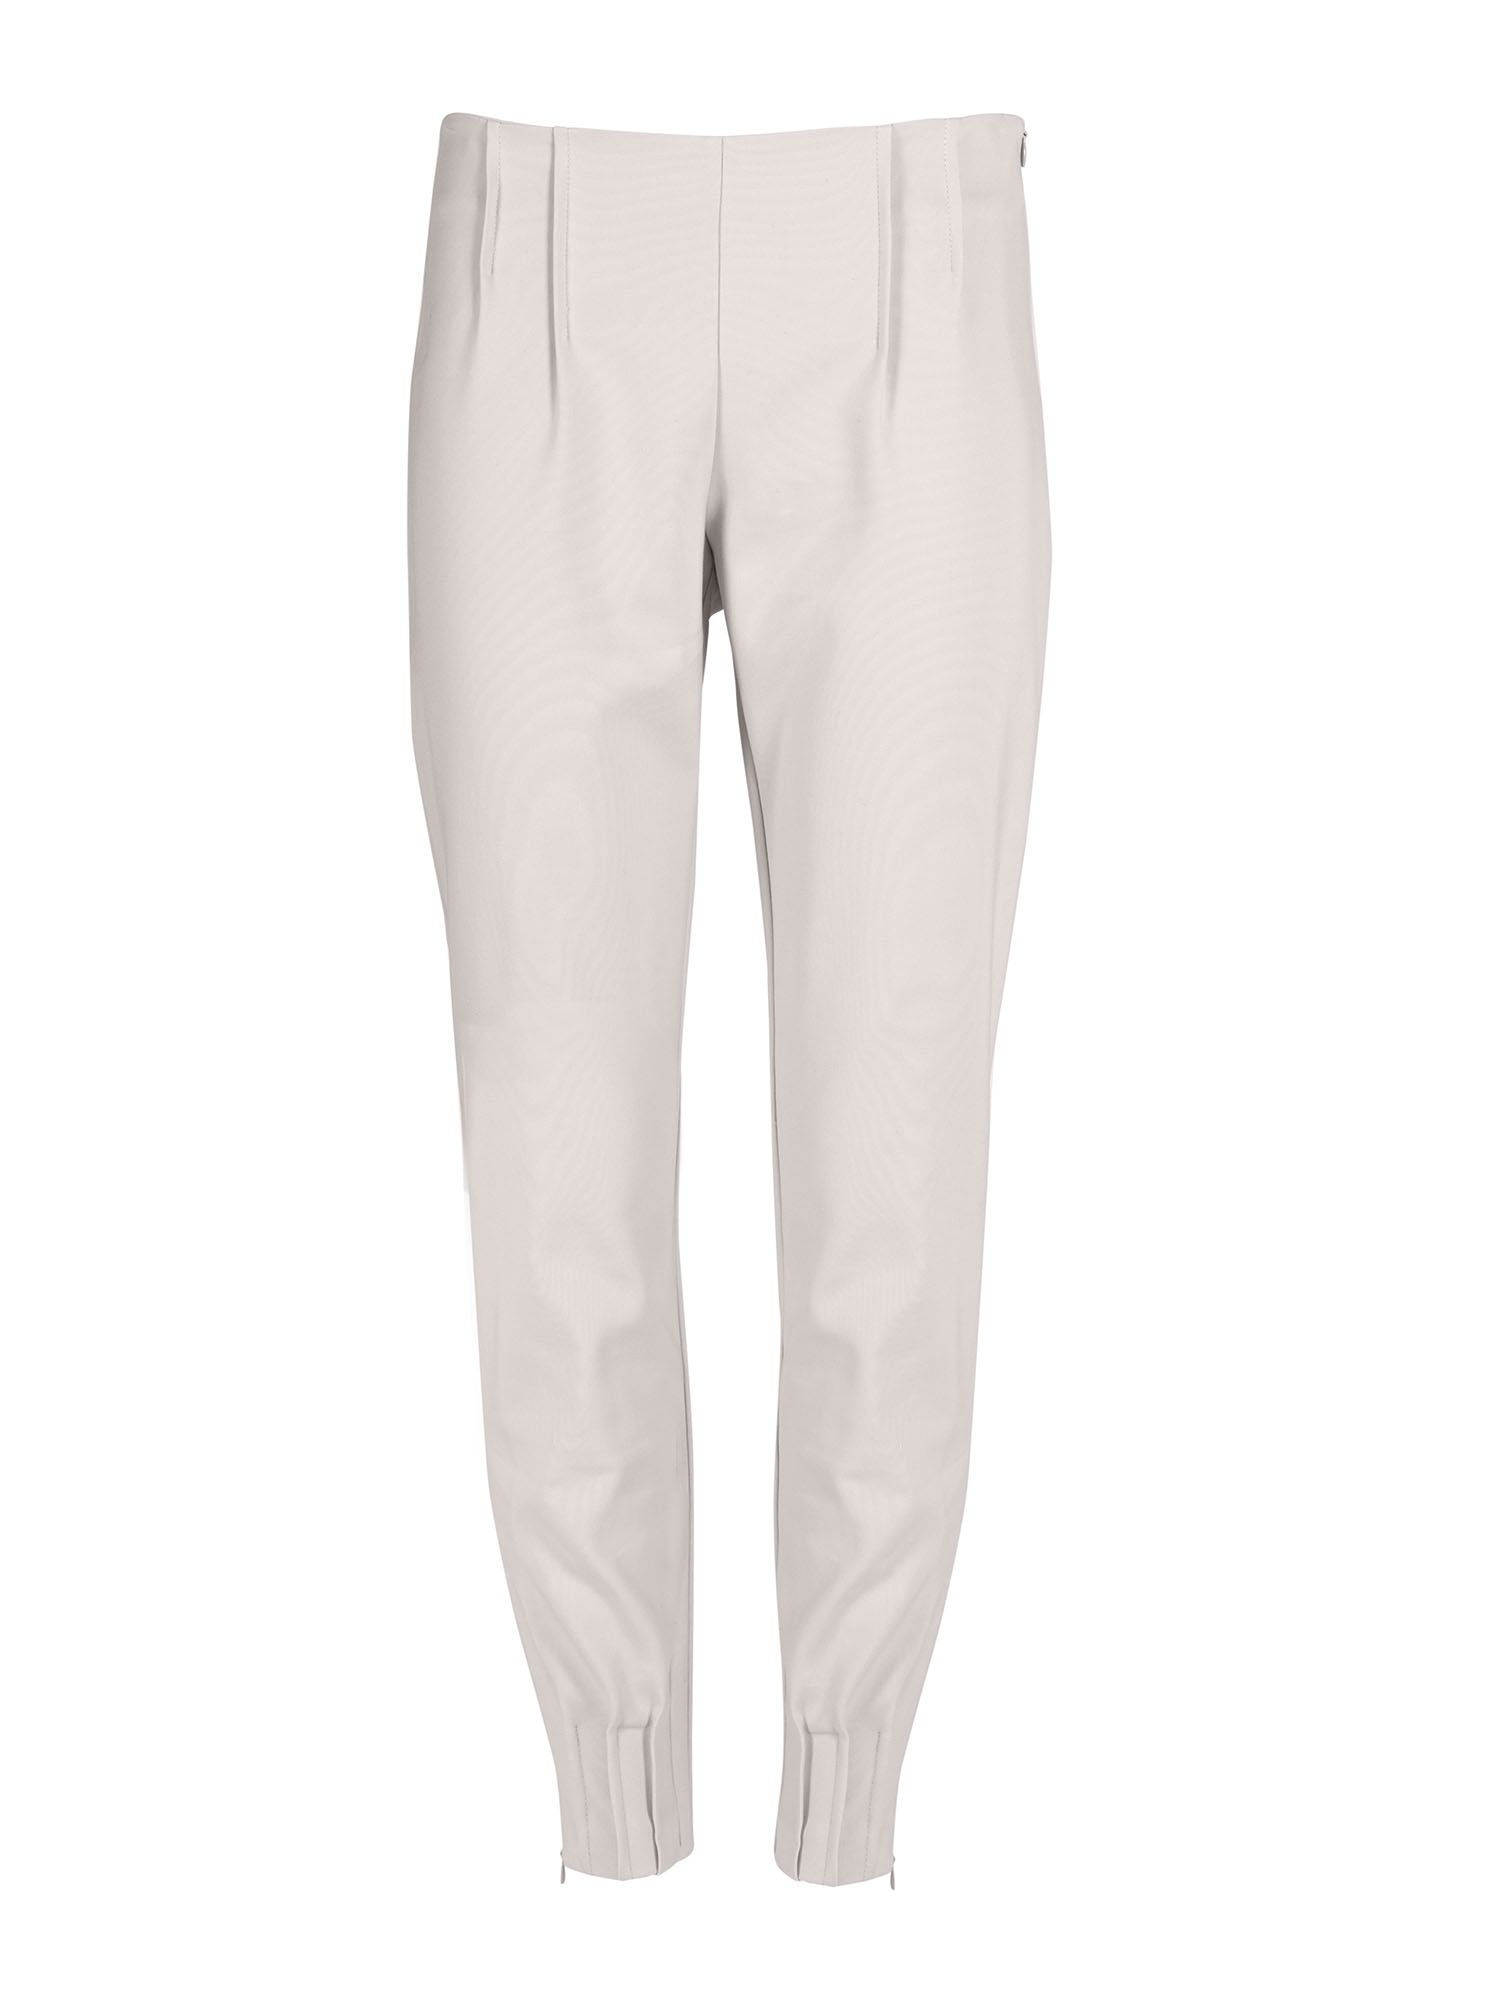 Stefanel Stretch Cotton Skinny Trousers, White